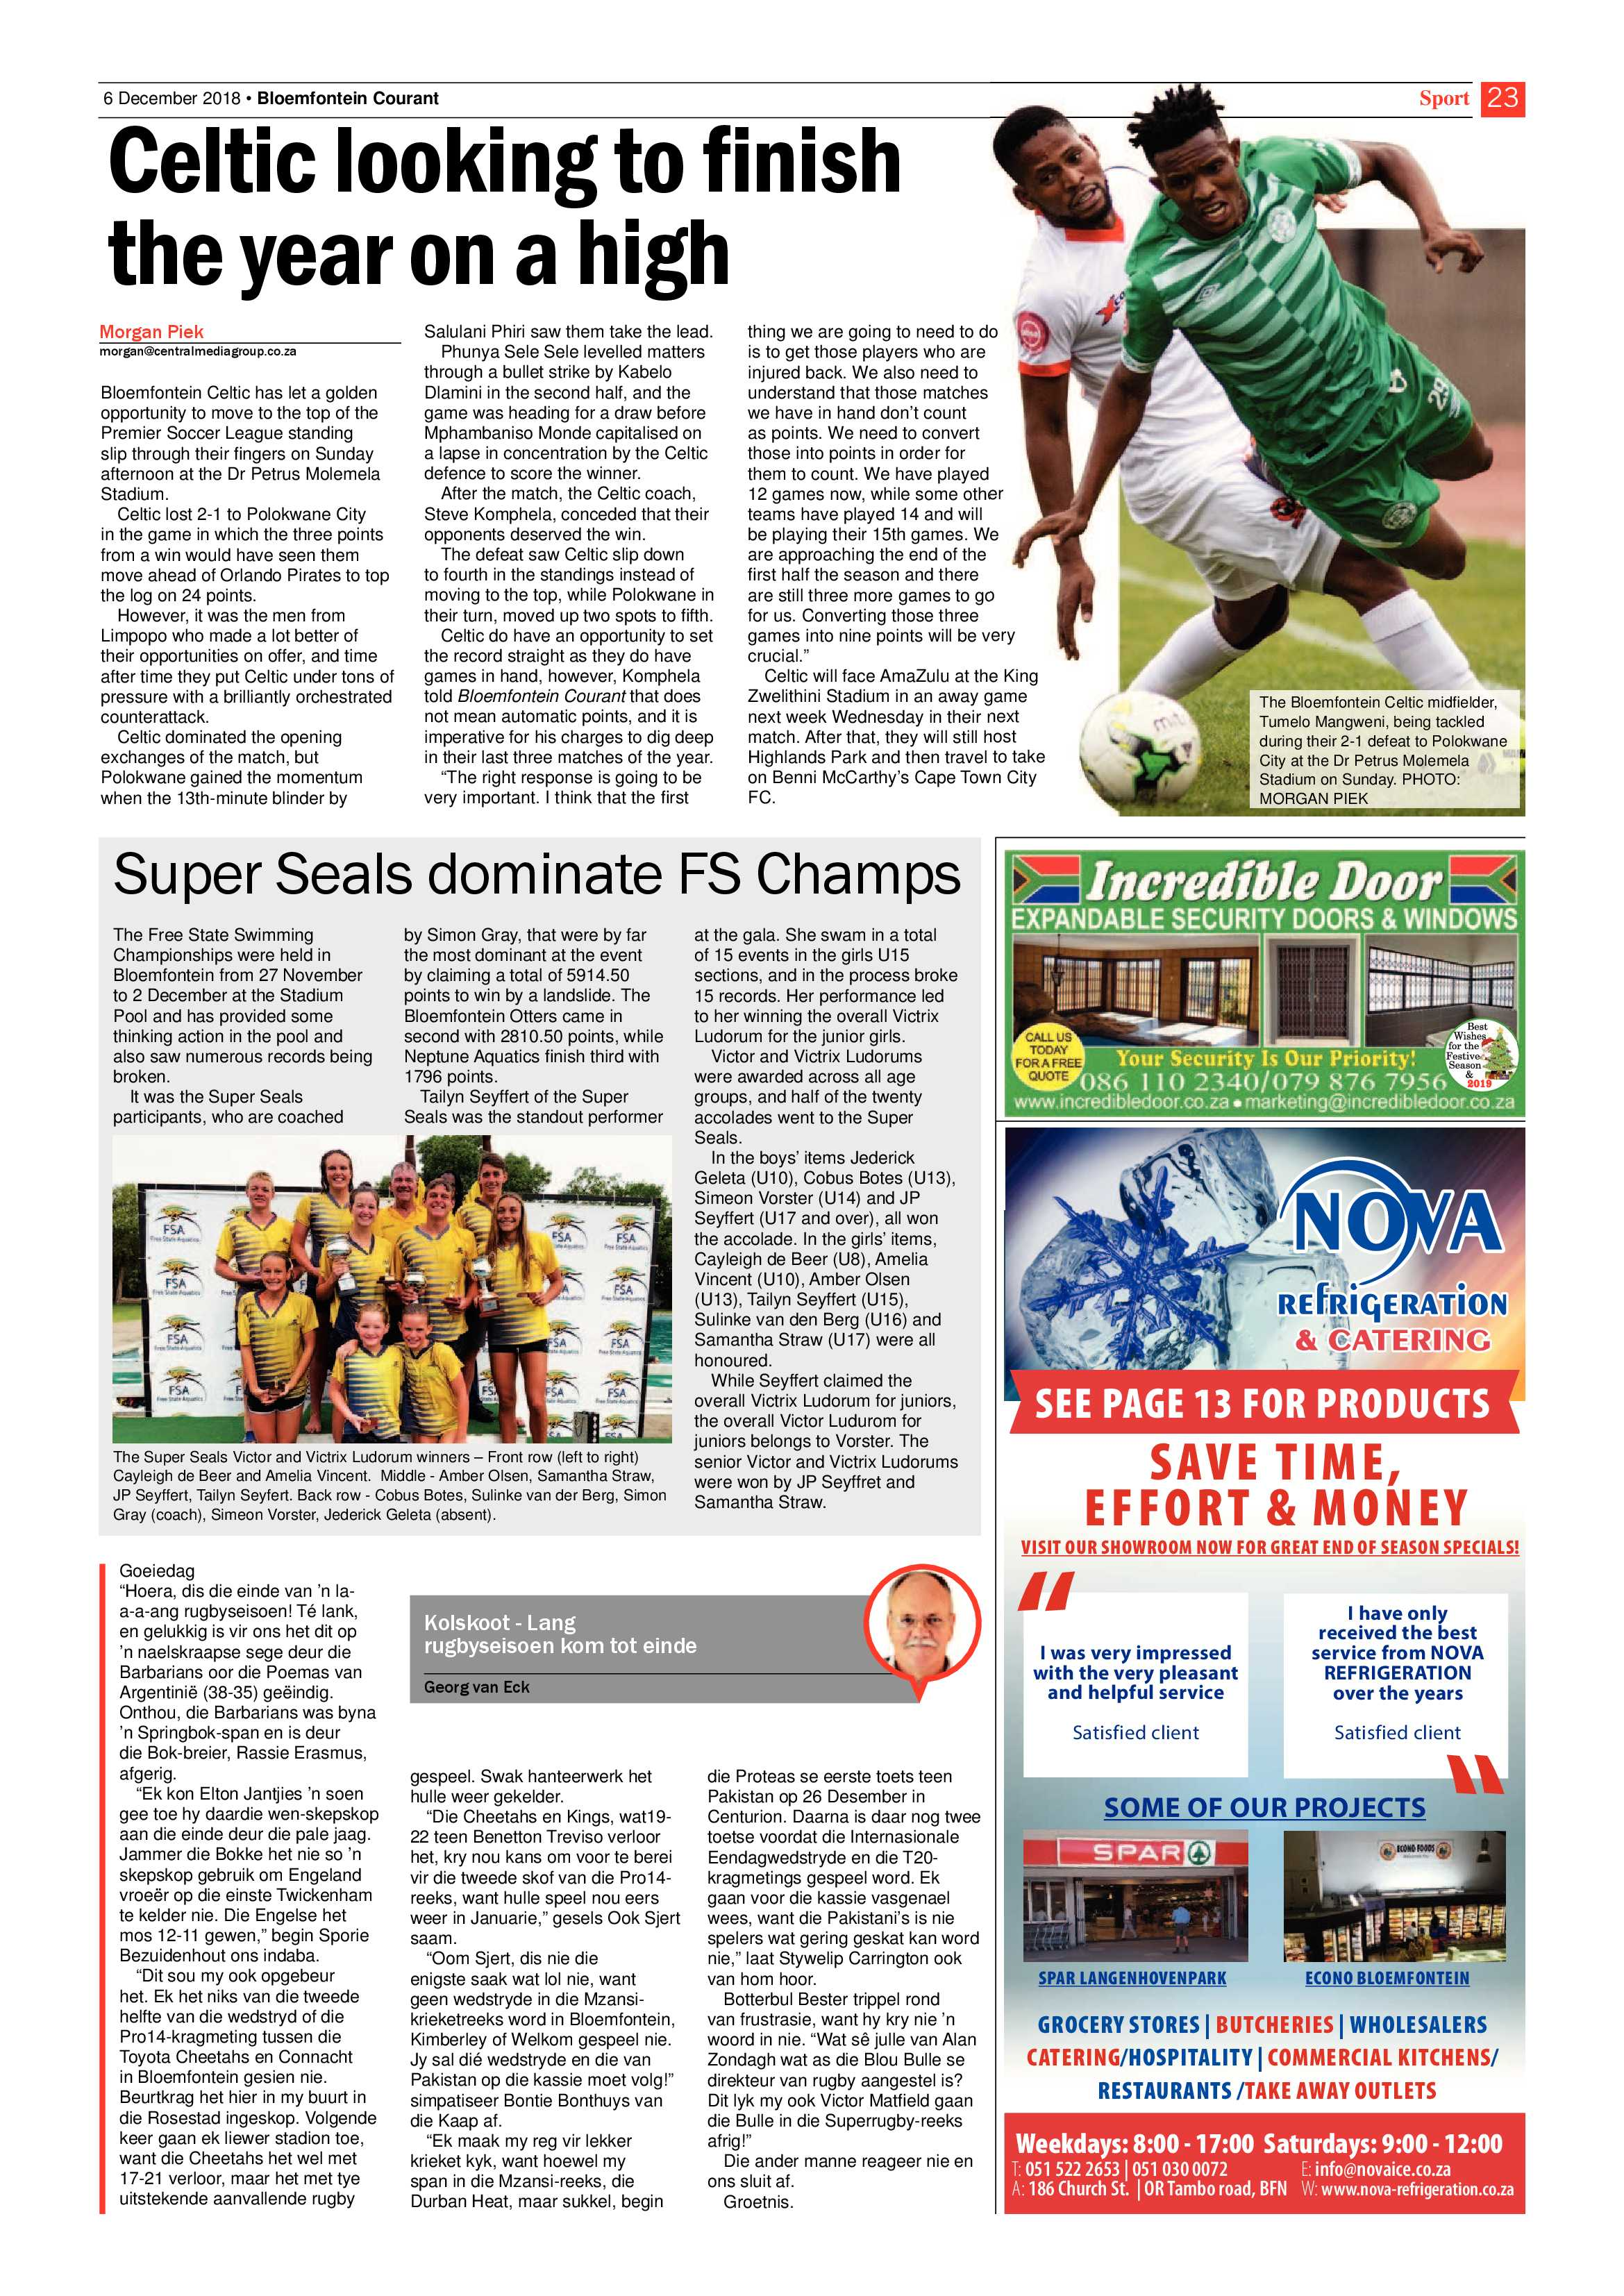 courant-6-december-2018-epapers-page-24